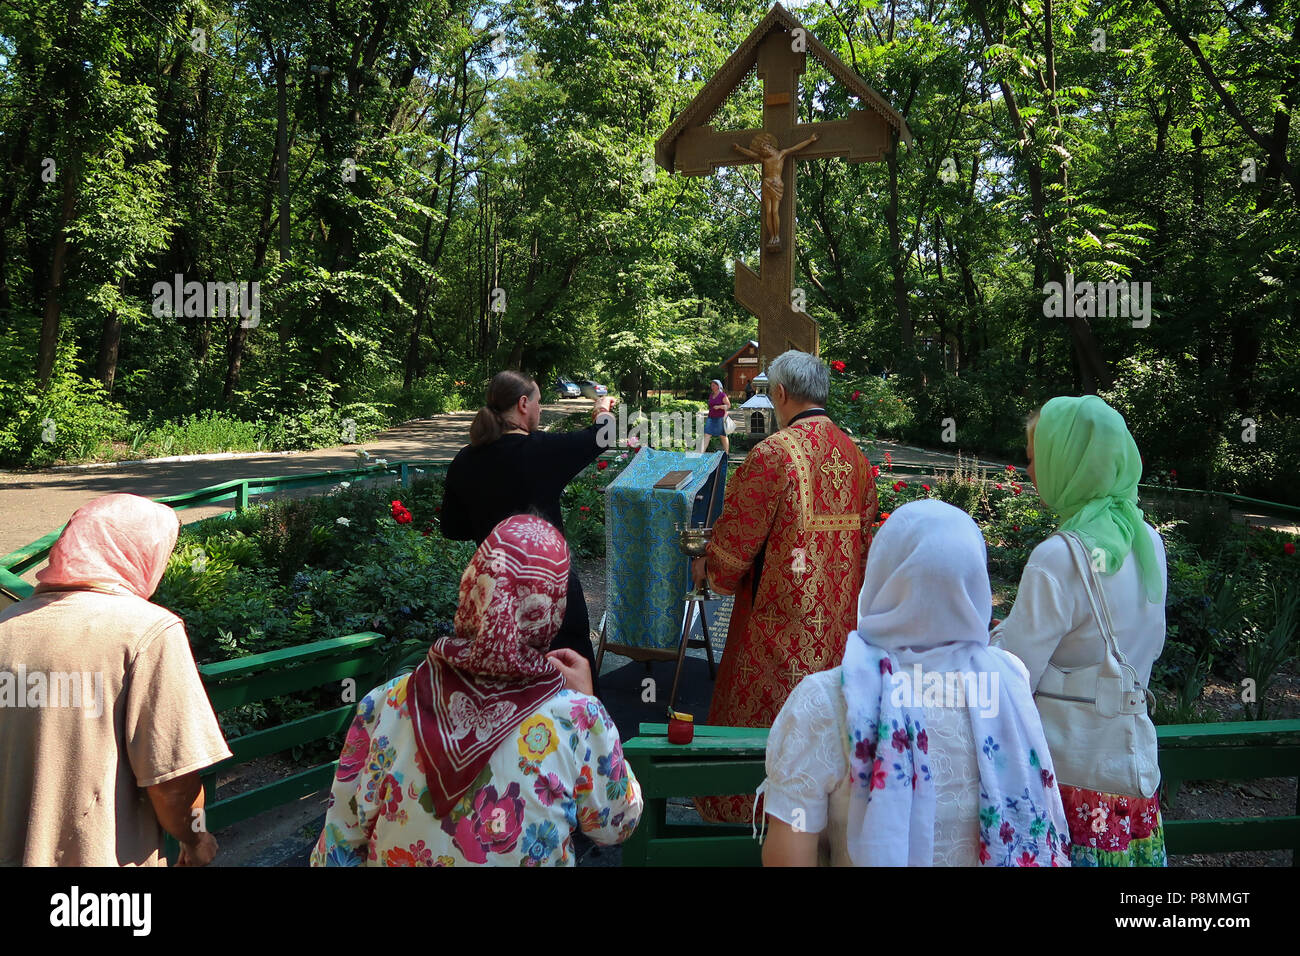 Orthodox leisure: a selection of sites